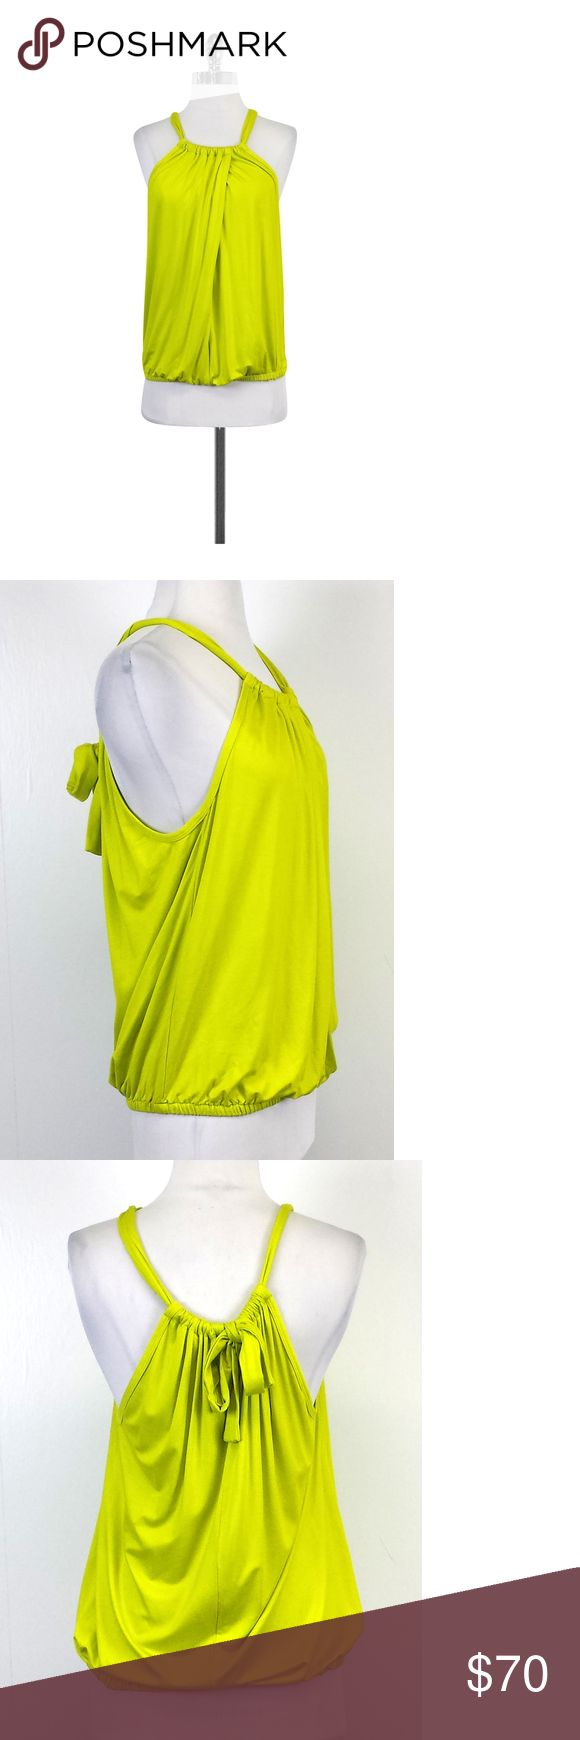 "Trina Turk- Neon Yellow Sleeveless Top Sz P This neon yellow top is perfect for summer. Wear it with a pleated skirt and sandals for a stylish casual outfit! Size Petite Body 90% Viscose 10% Elastane Made in the USA Slips on Elastic hem Shoulder to Hem 27.5"" Trina Turk embodies a pretty, flirty and fun style. Her collections are perfect for the office or a weekend getaway. This particular designer likes to focus on the perfect fit and feminine colors and shapes.Her garments are popular in…"